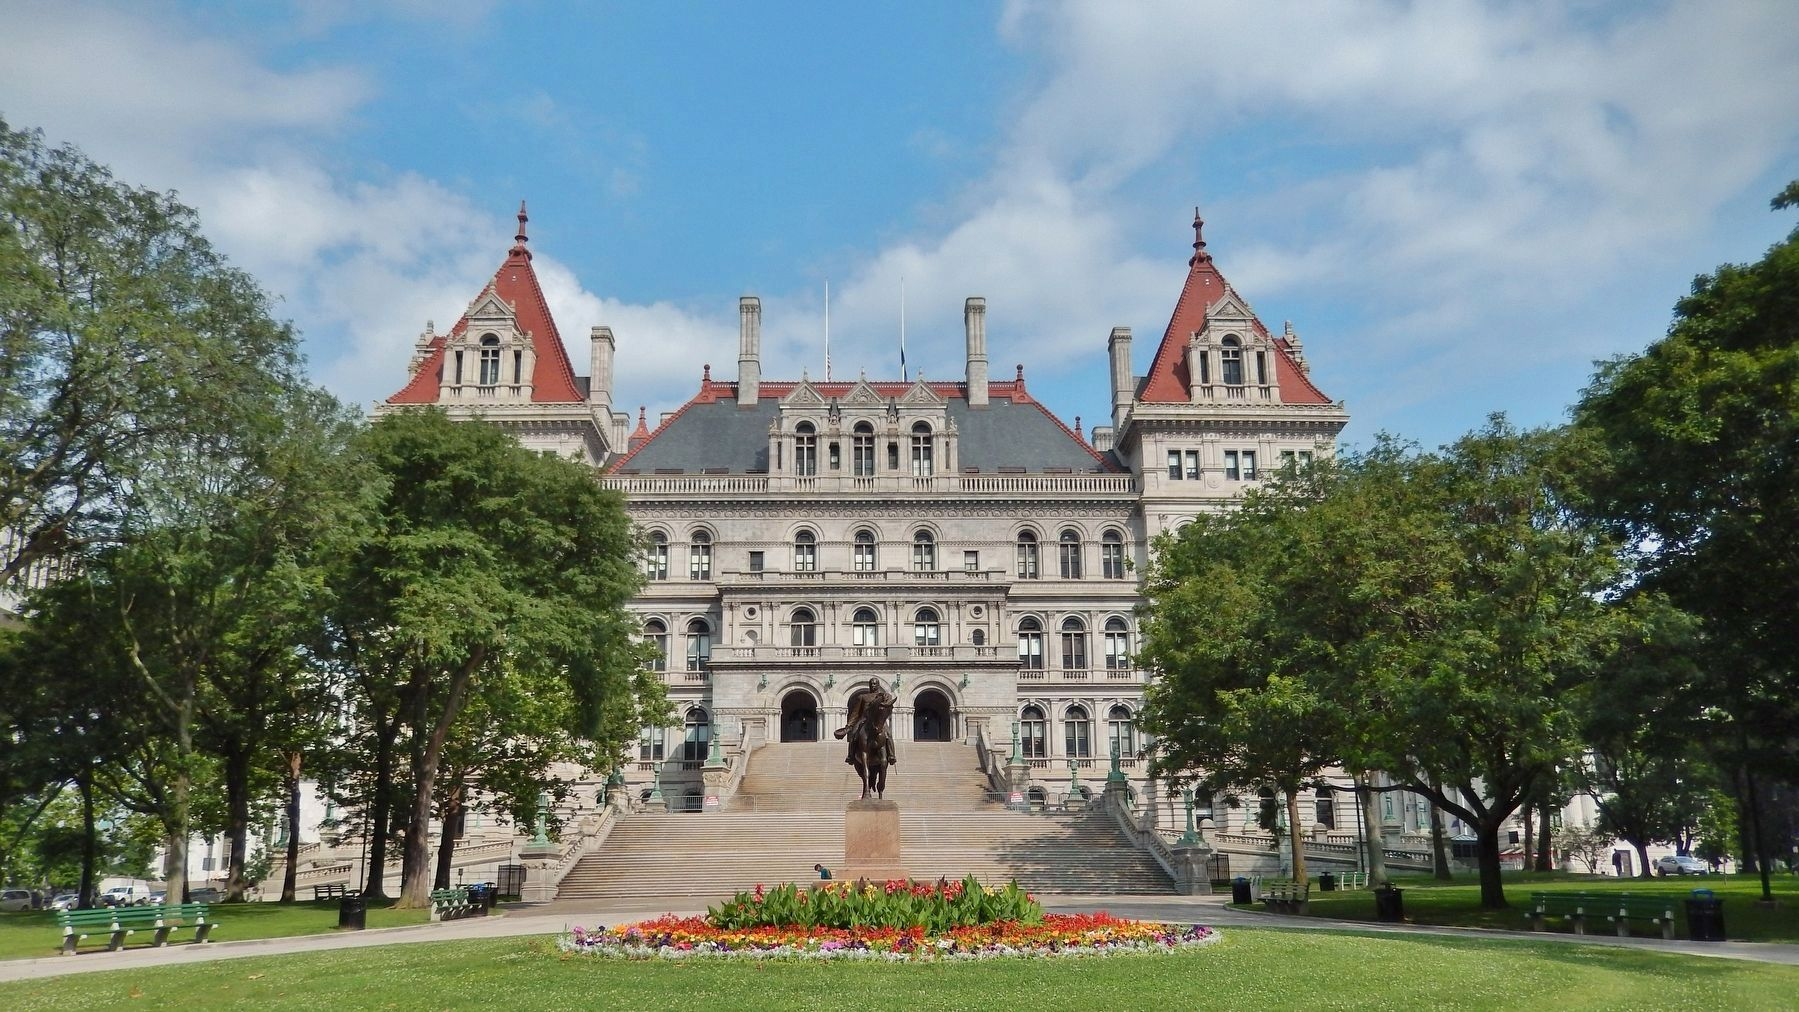 New York State Capitol (<i>view from marker - southeast side</i>) image. Click for full size.